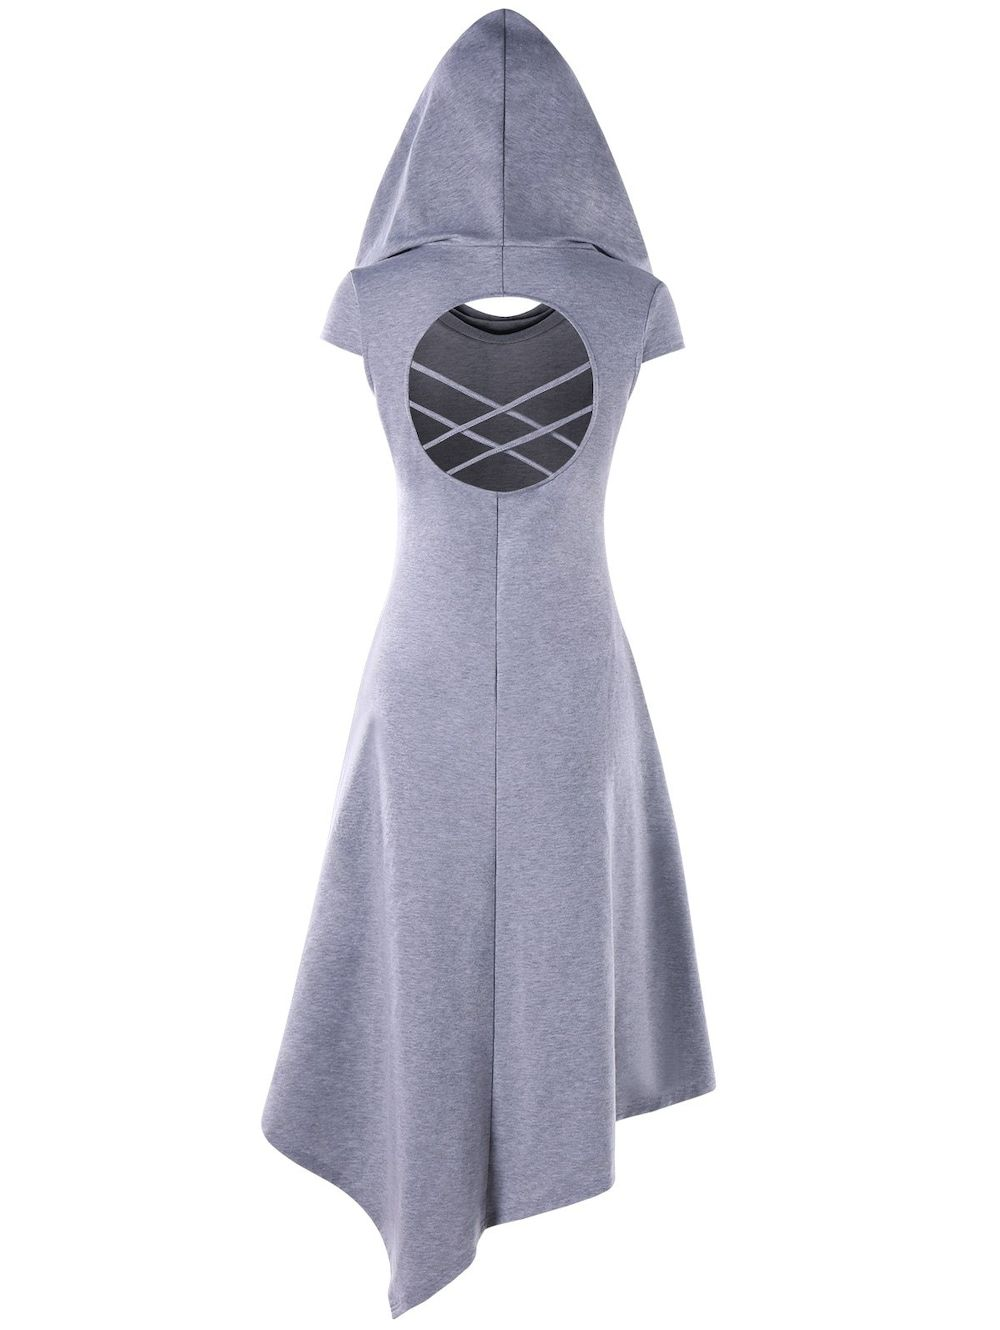 Hooded Criss Cross Cut Out Handkerchief Dress | Fashion | Pinterest ...